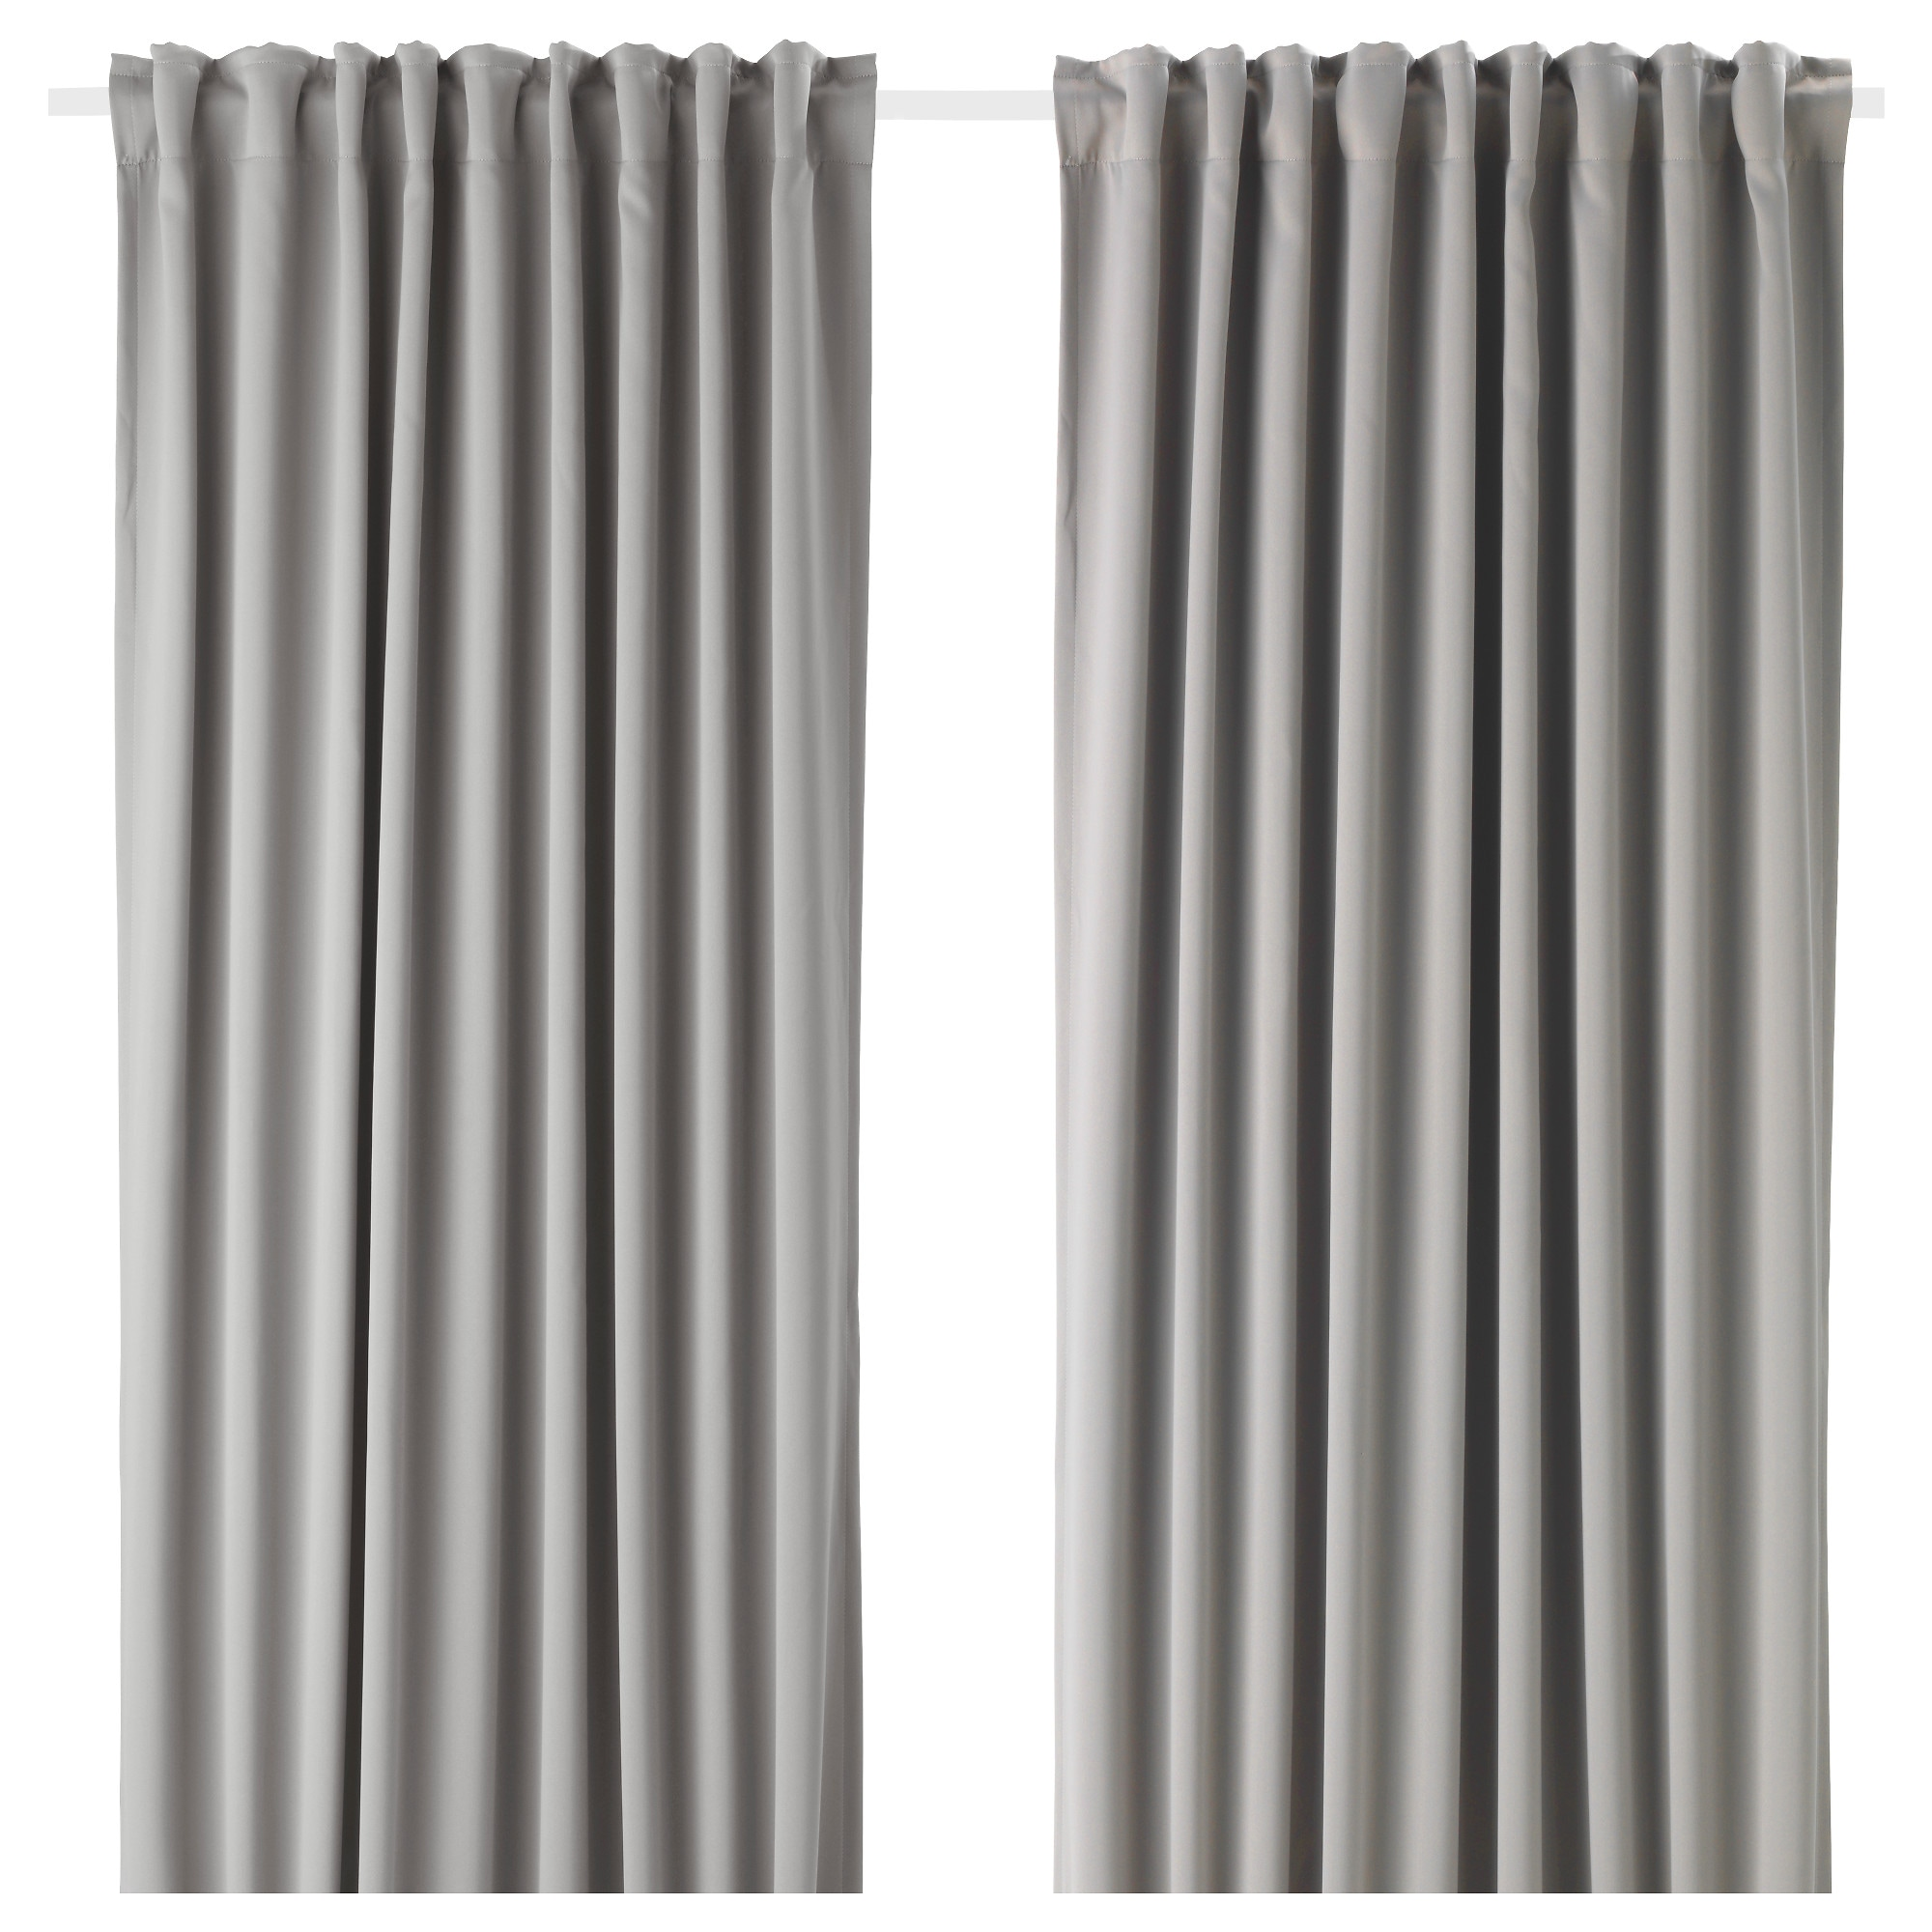 White living room curtains - Majgull Blackout Curtains 1 Pair Gray Length 98 Width 57